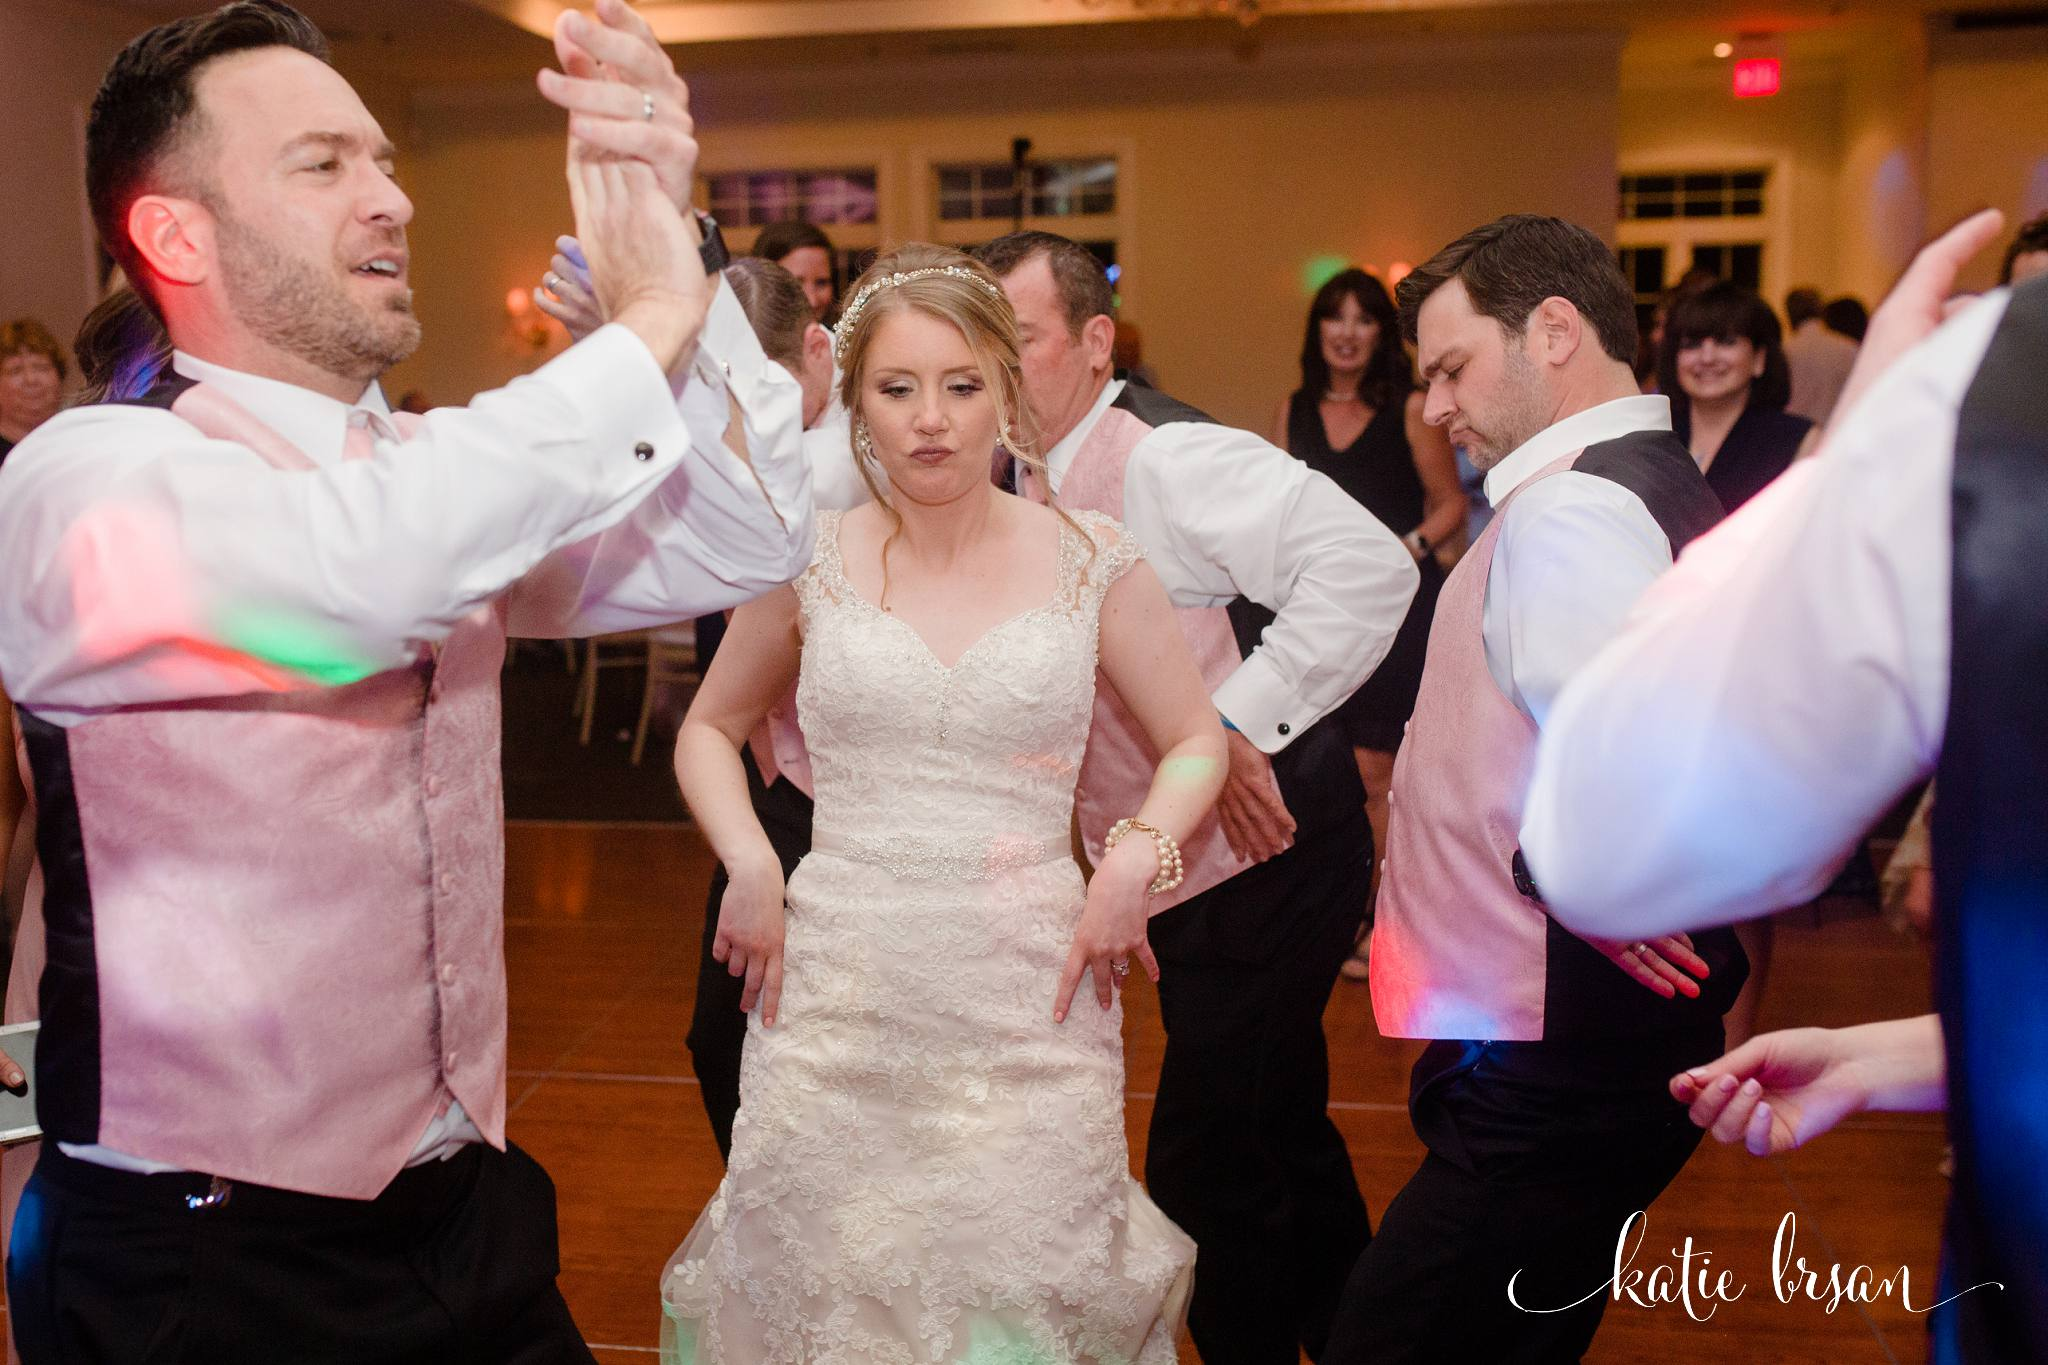 Mokena_Lemont_Wedding_Ruffled_Feathers_Wedding_1457.jpg